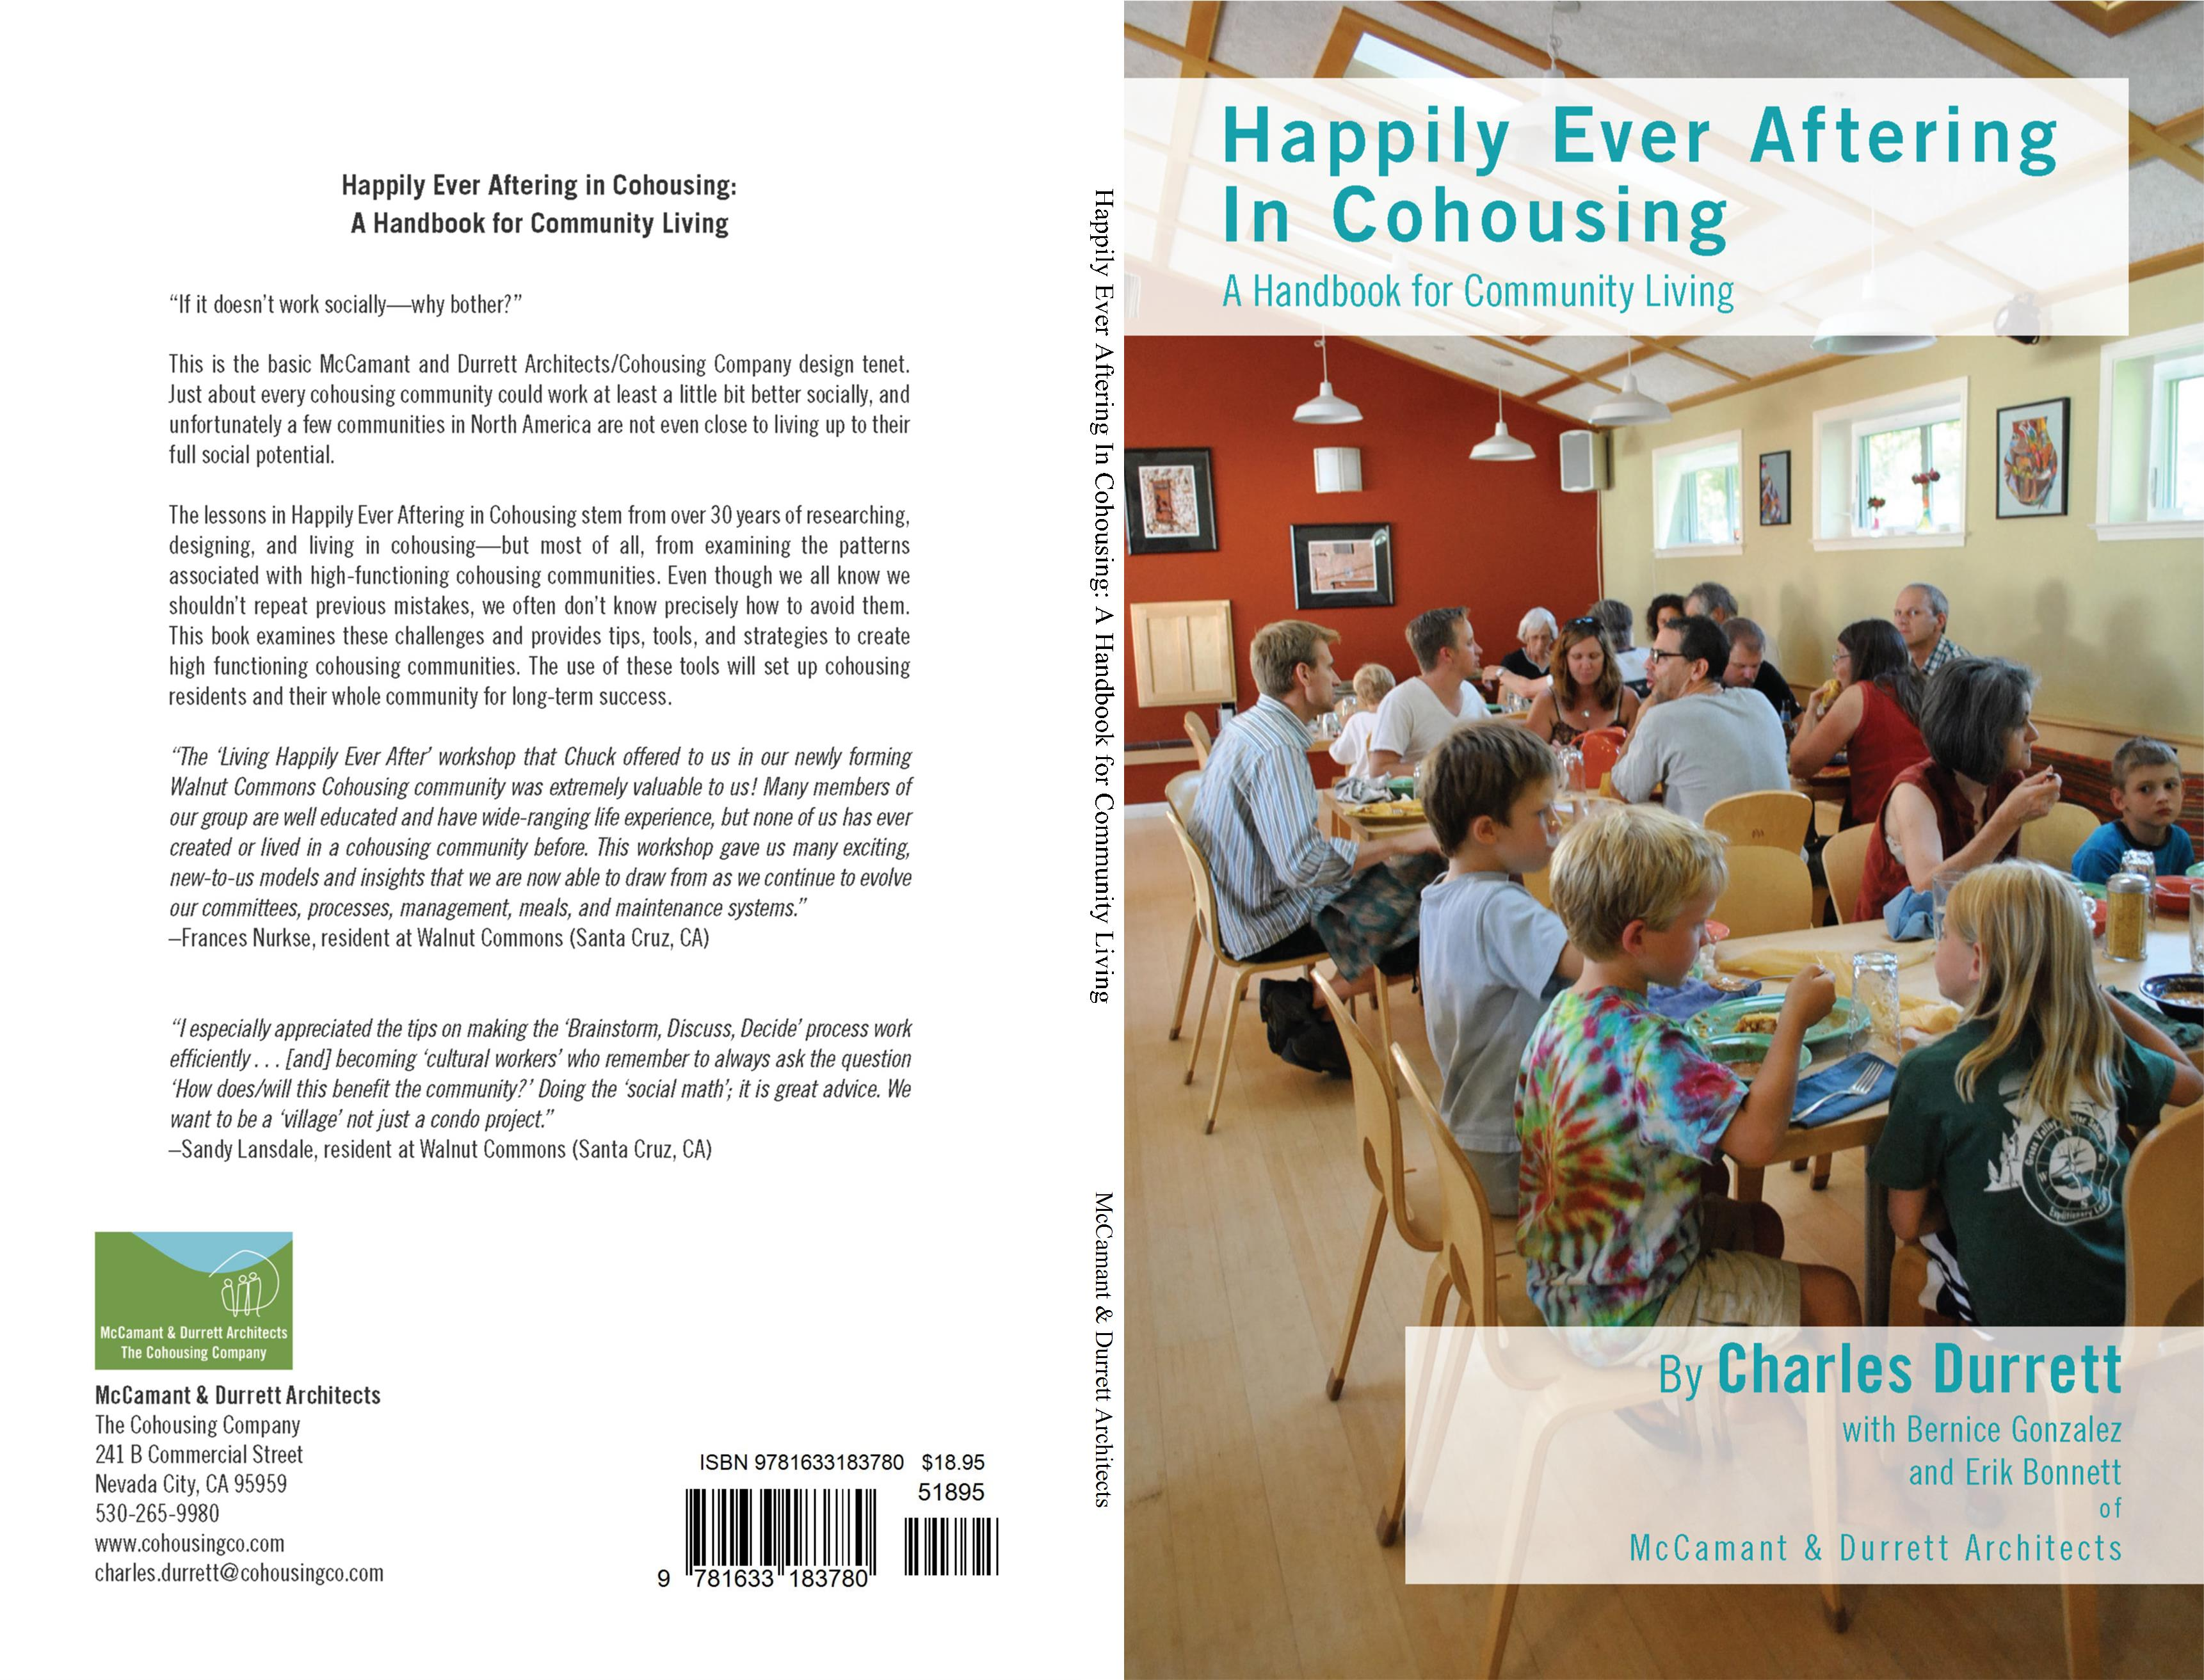 Happily Ever Aftering In Cohousing: A Handbook fro Community Living cover image